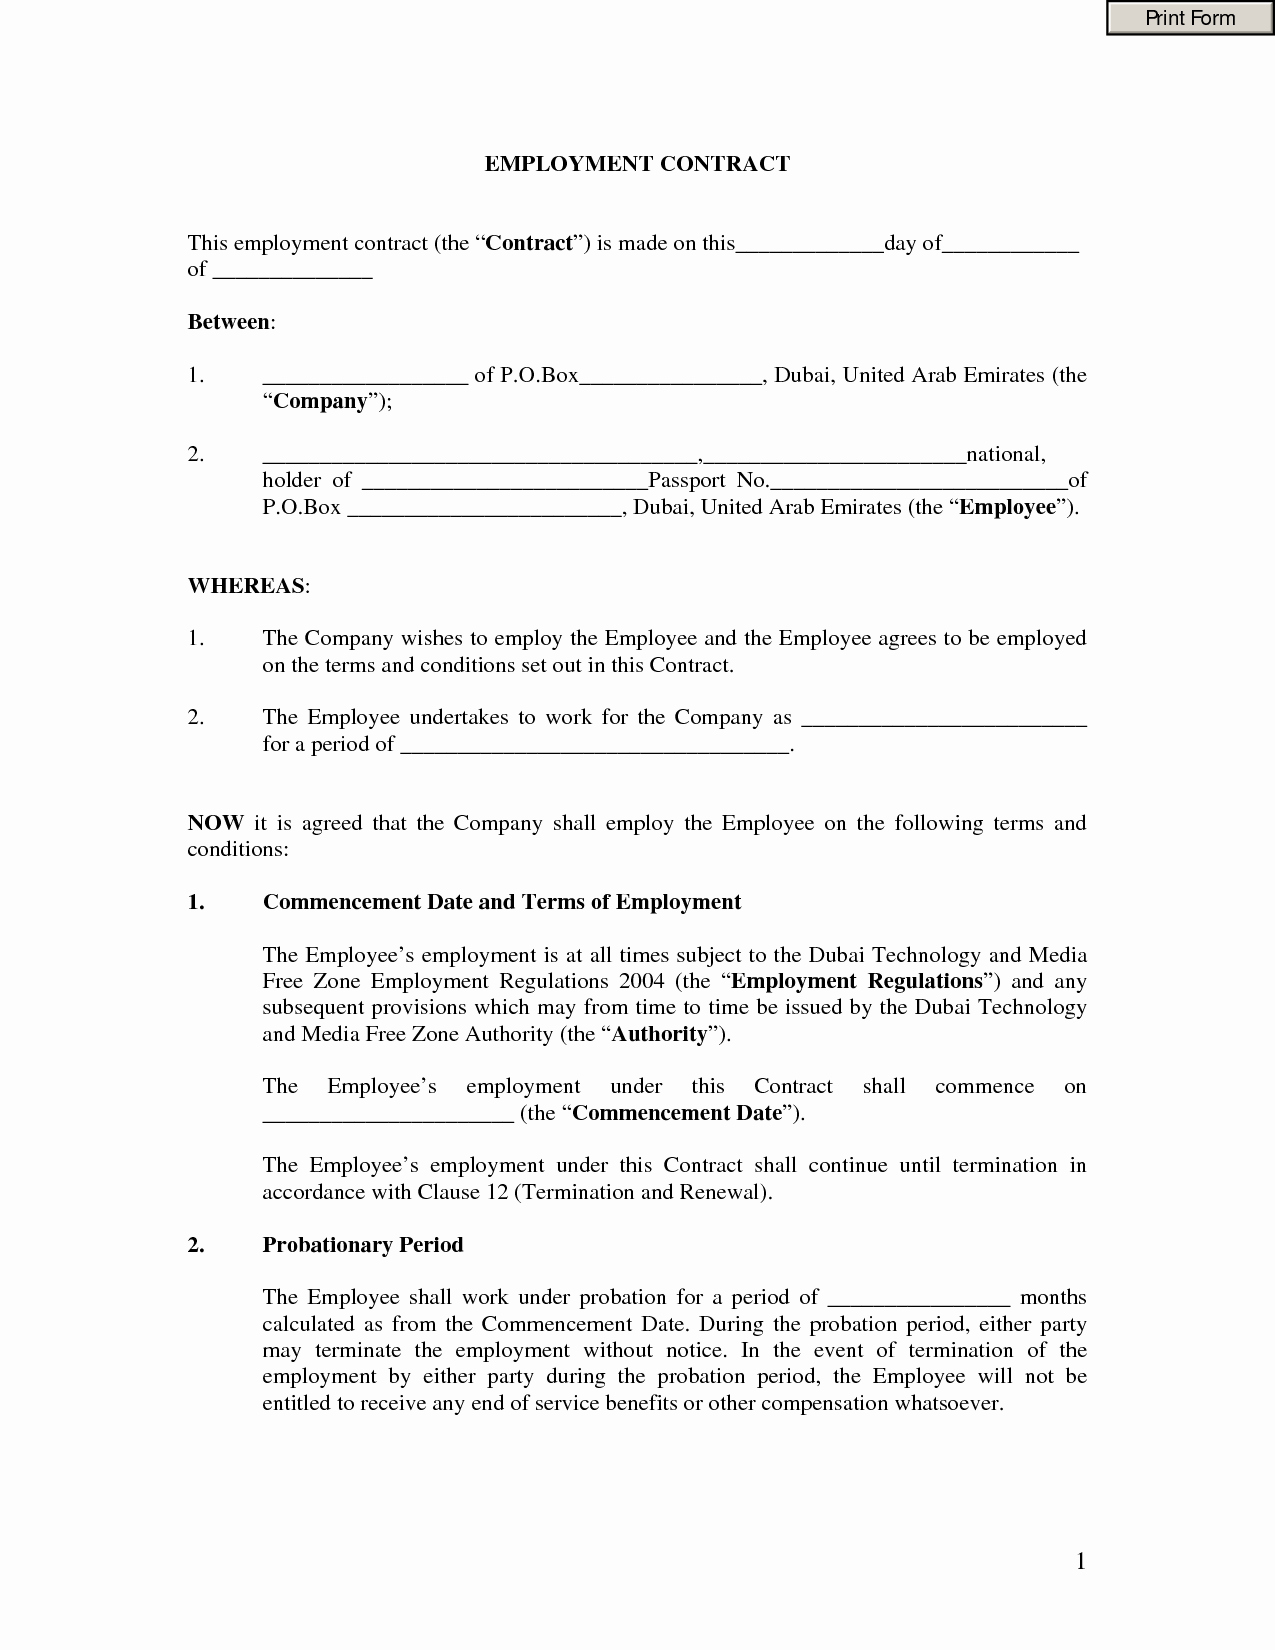 Employment Contract Template Word Unique Employment Contract Template Word Portablegasgrillweber